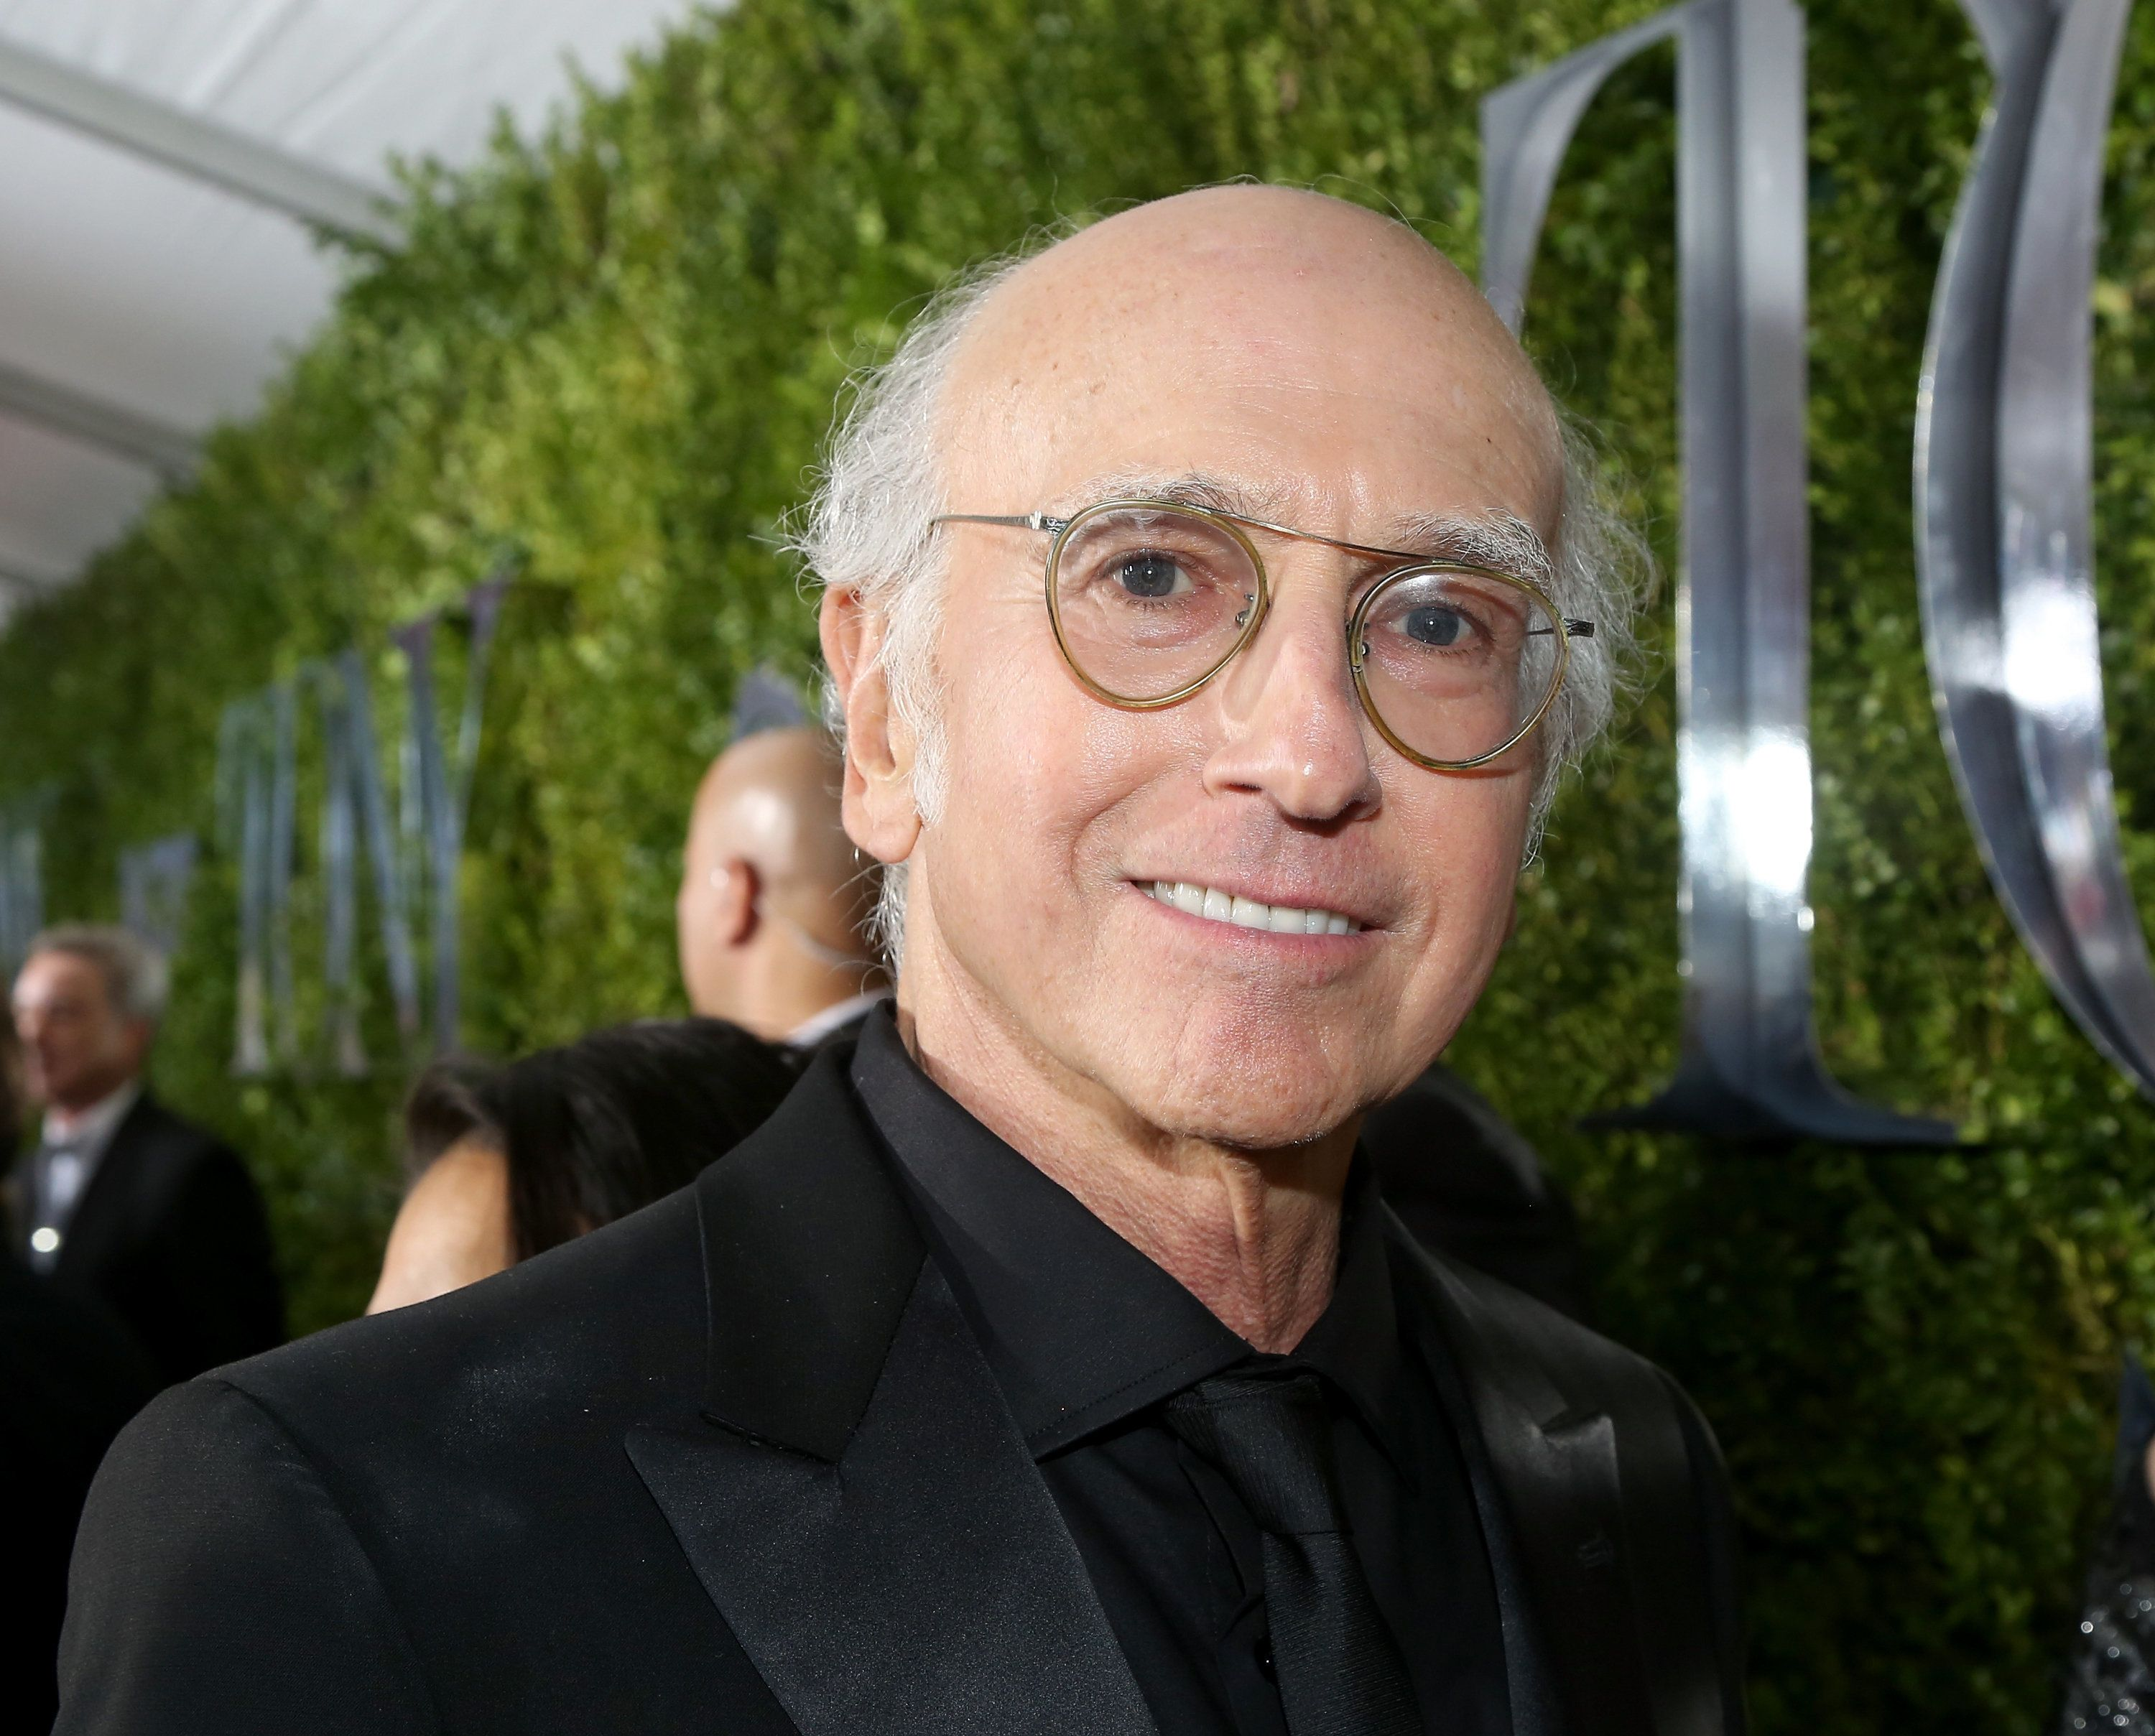 NEW YORK, NY - JUNE 07:  Larry David attends the American Theatre Wing's 69th Annual Tony Awards at Radio City Music Hall on June 7, 2015 in New York City.  (Photo by Bruce Glikas/FilmMagic)